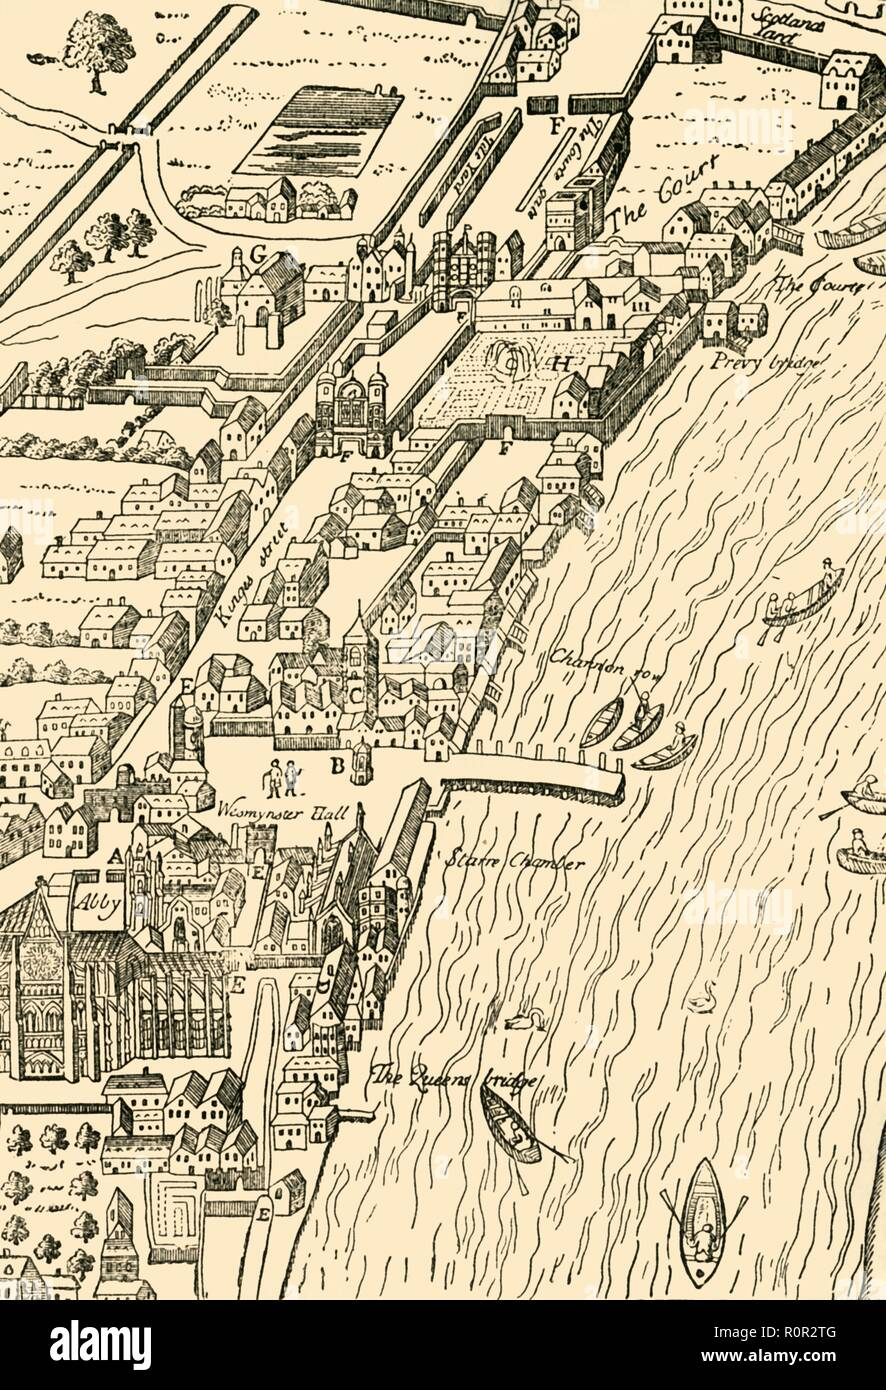 'Whitehall and Westminster. (From Aggas' Map)', (1881). Bird's eye view, by cartographer Ralph Agas (c1540-1621), of Whitehall Palace in the village of Westminster on the River Thames, now part of greater London. Buildings and landmarks shown include: Westminster Abbey, Westminster Hall, the 'Starre' Chamber, and Scotland Yard. From Old and New London: A Narrative of Its History, Its People, and Its Places. Westminster and the Western Suburbs, by Edward Walford, Vol. III. [Cassell, Petter, Galpin & Co., London, Paris & New York, 1881] - Stock Image